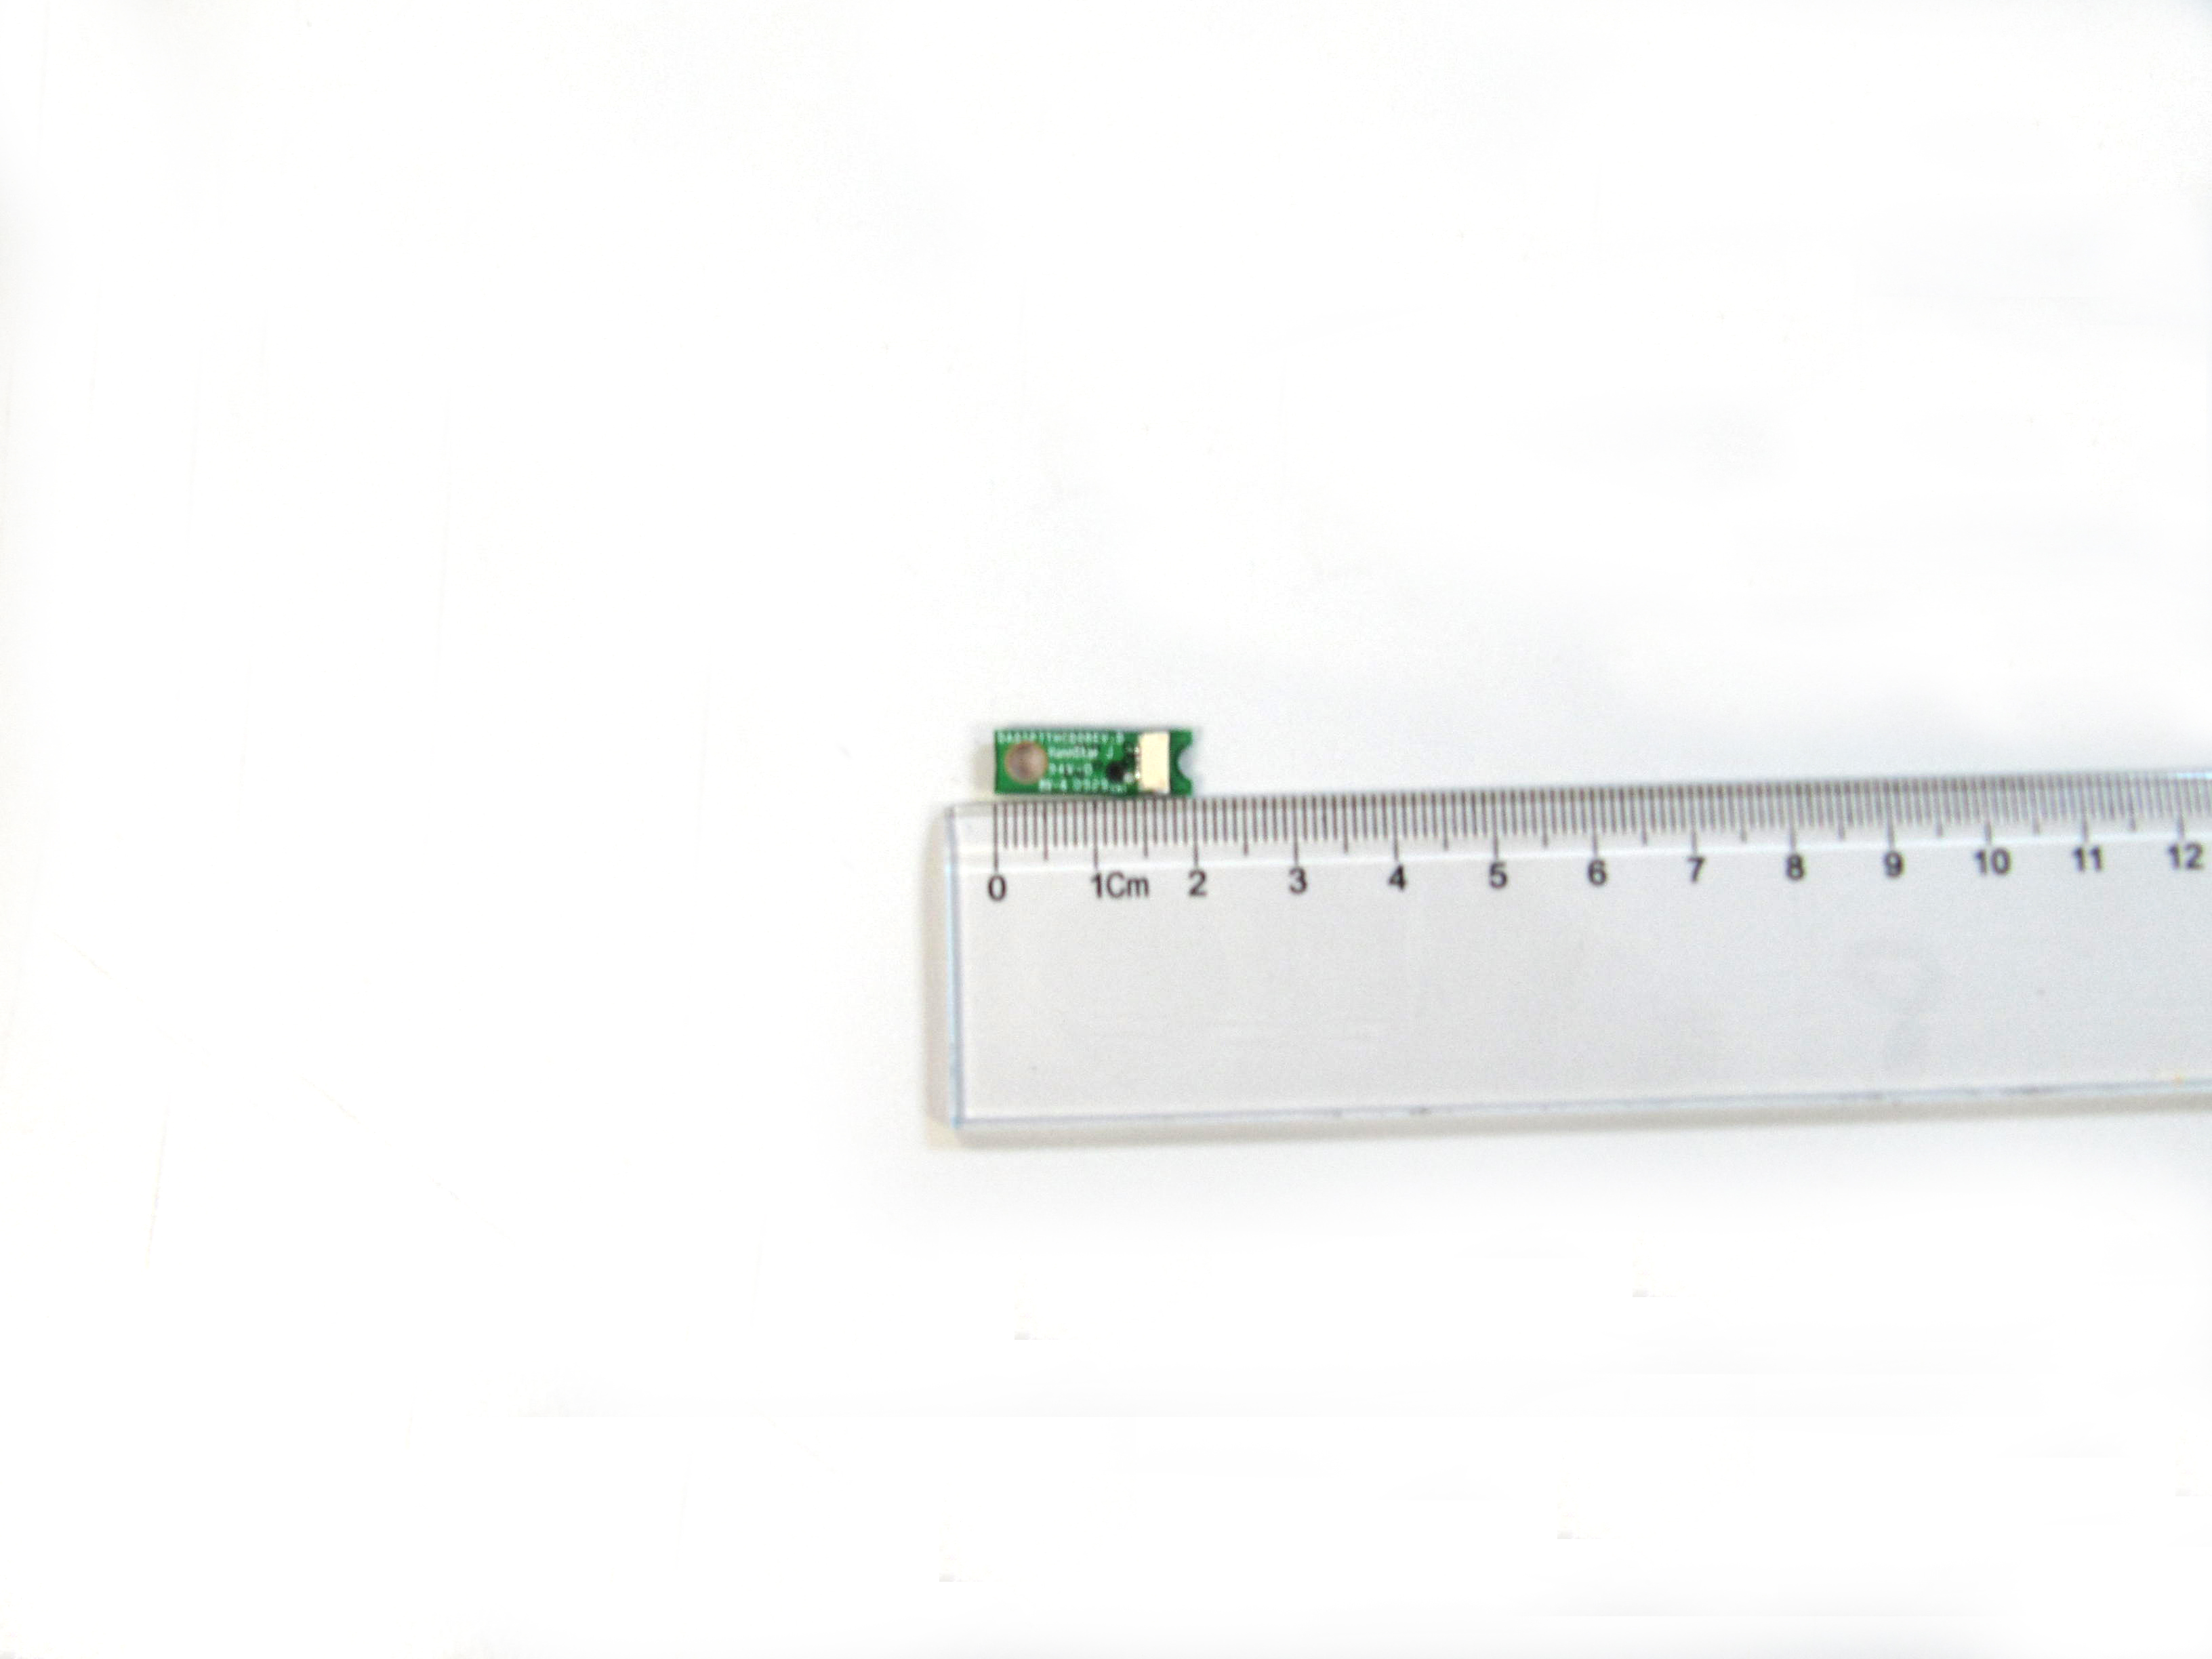 Board AMBIENT LIGHT SENSOR W/CABLE